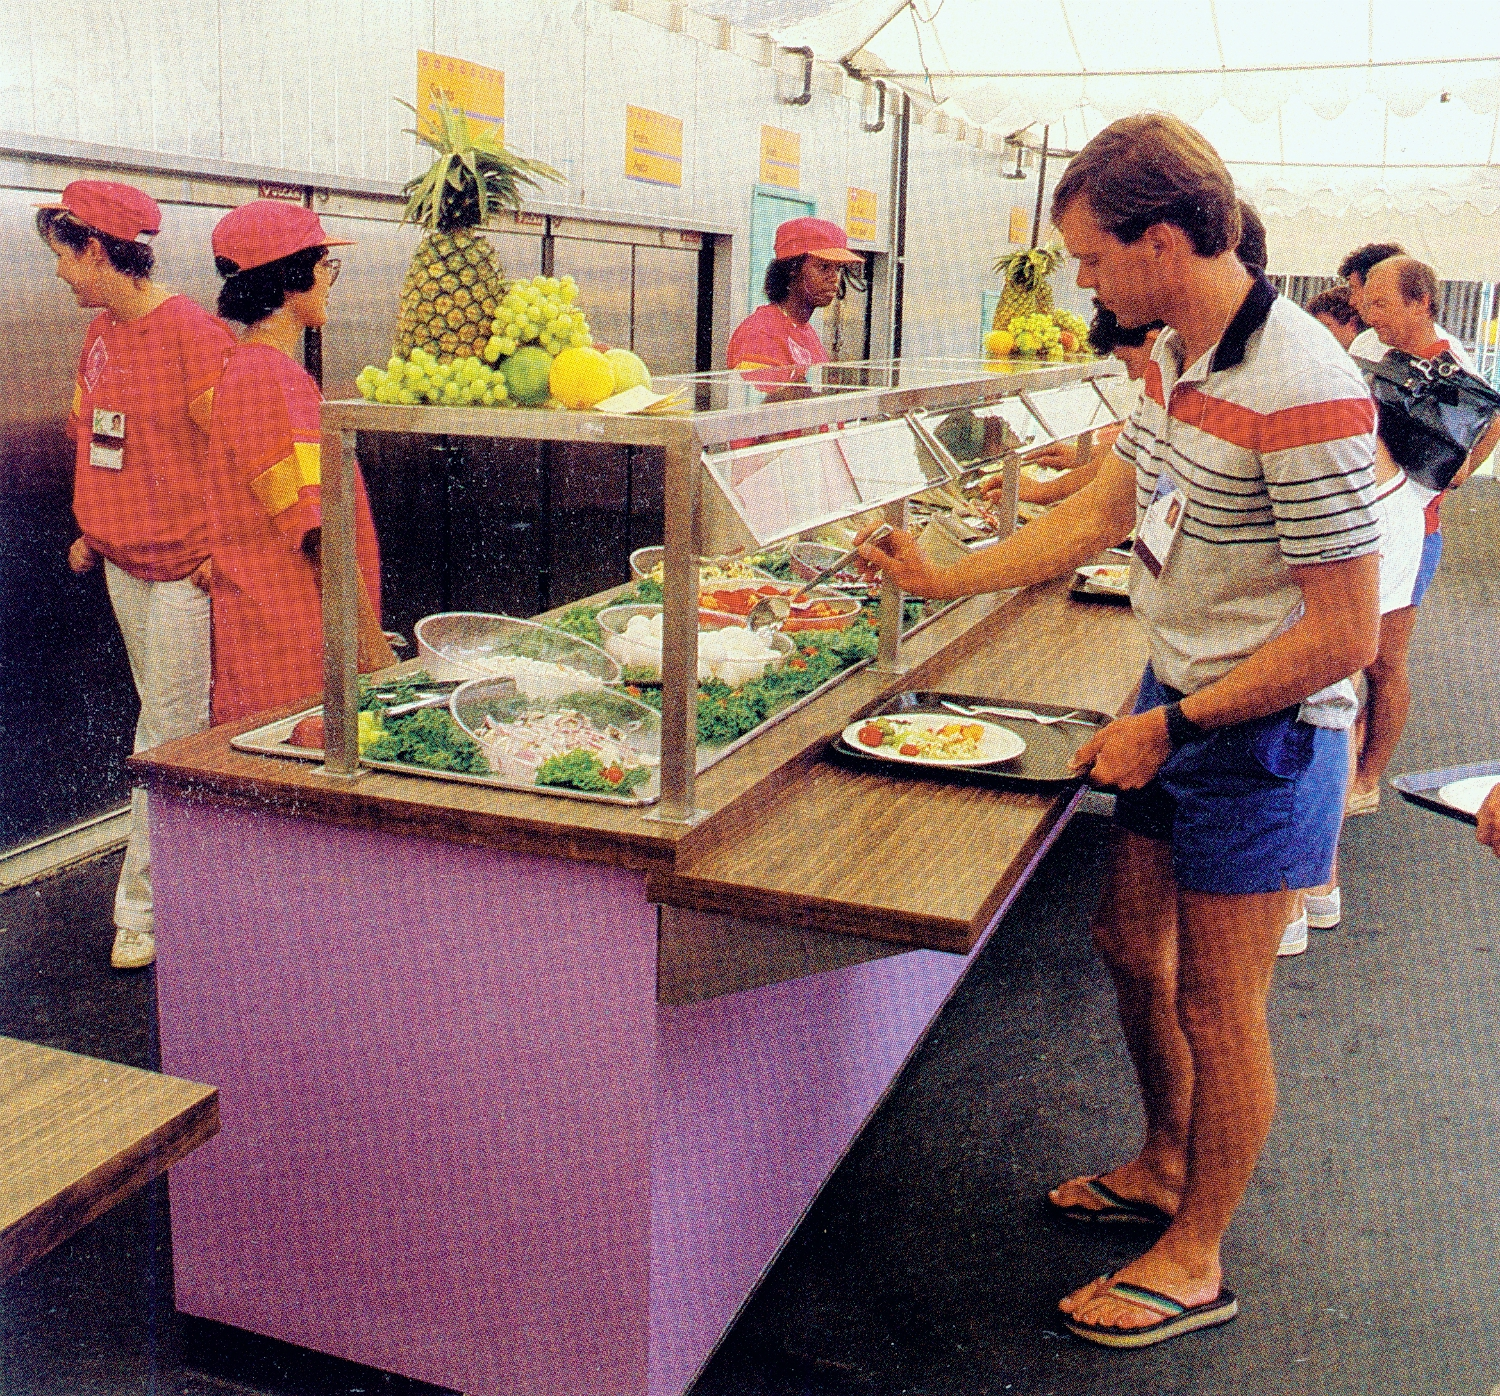 1984 olympics food salad bar